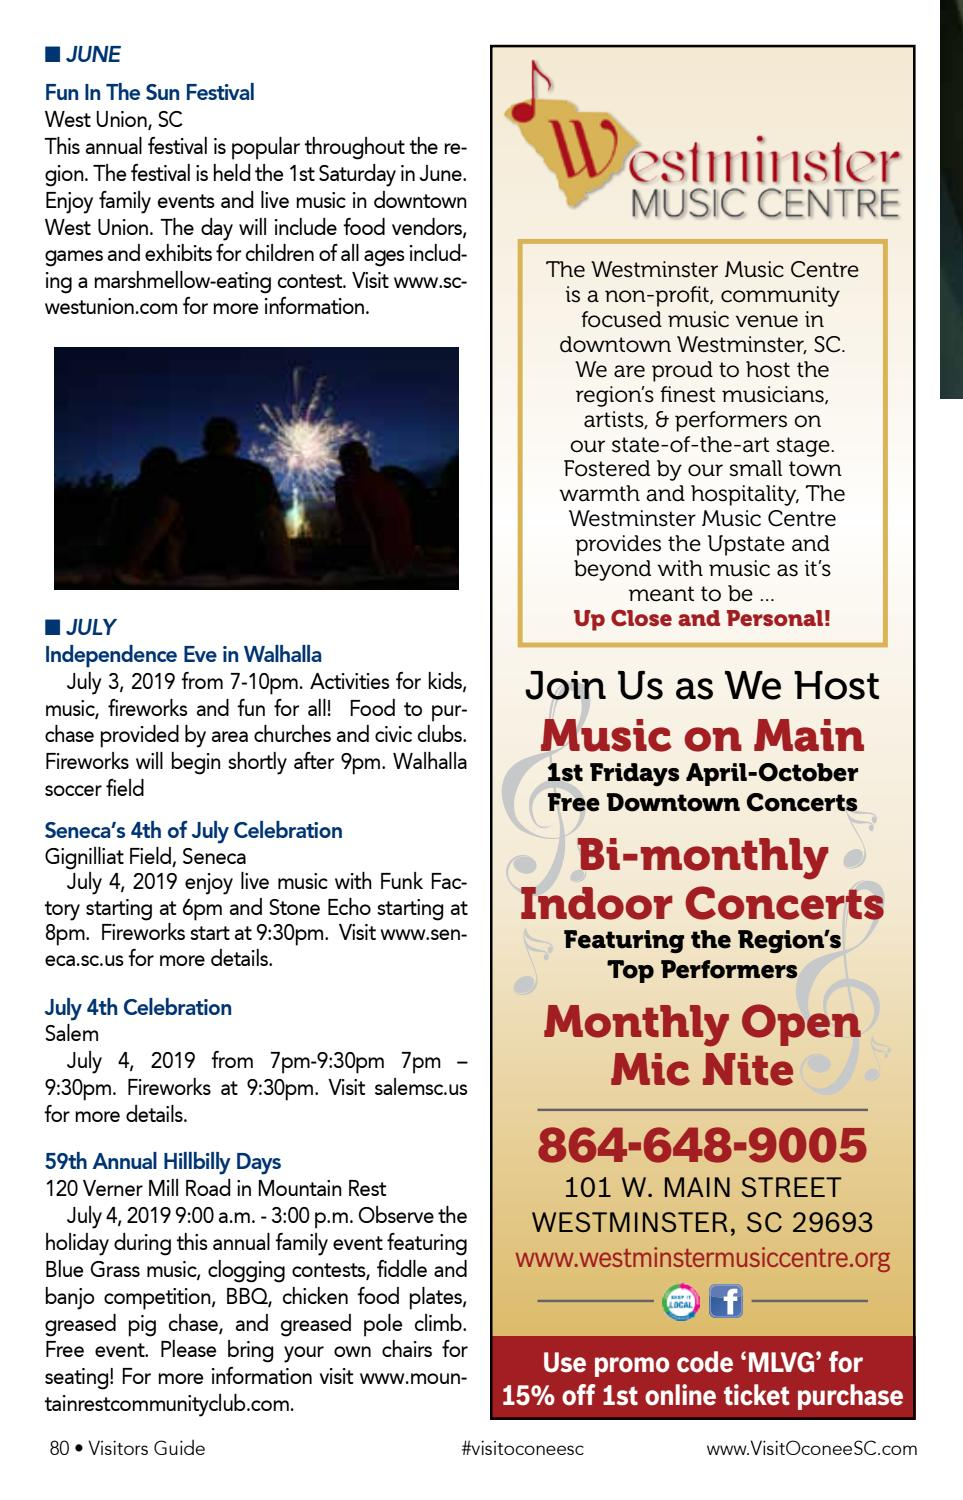 Visit Oconee SC Visitor's Guide by EDWARDS PUBLICATIONS - issuu